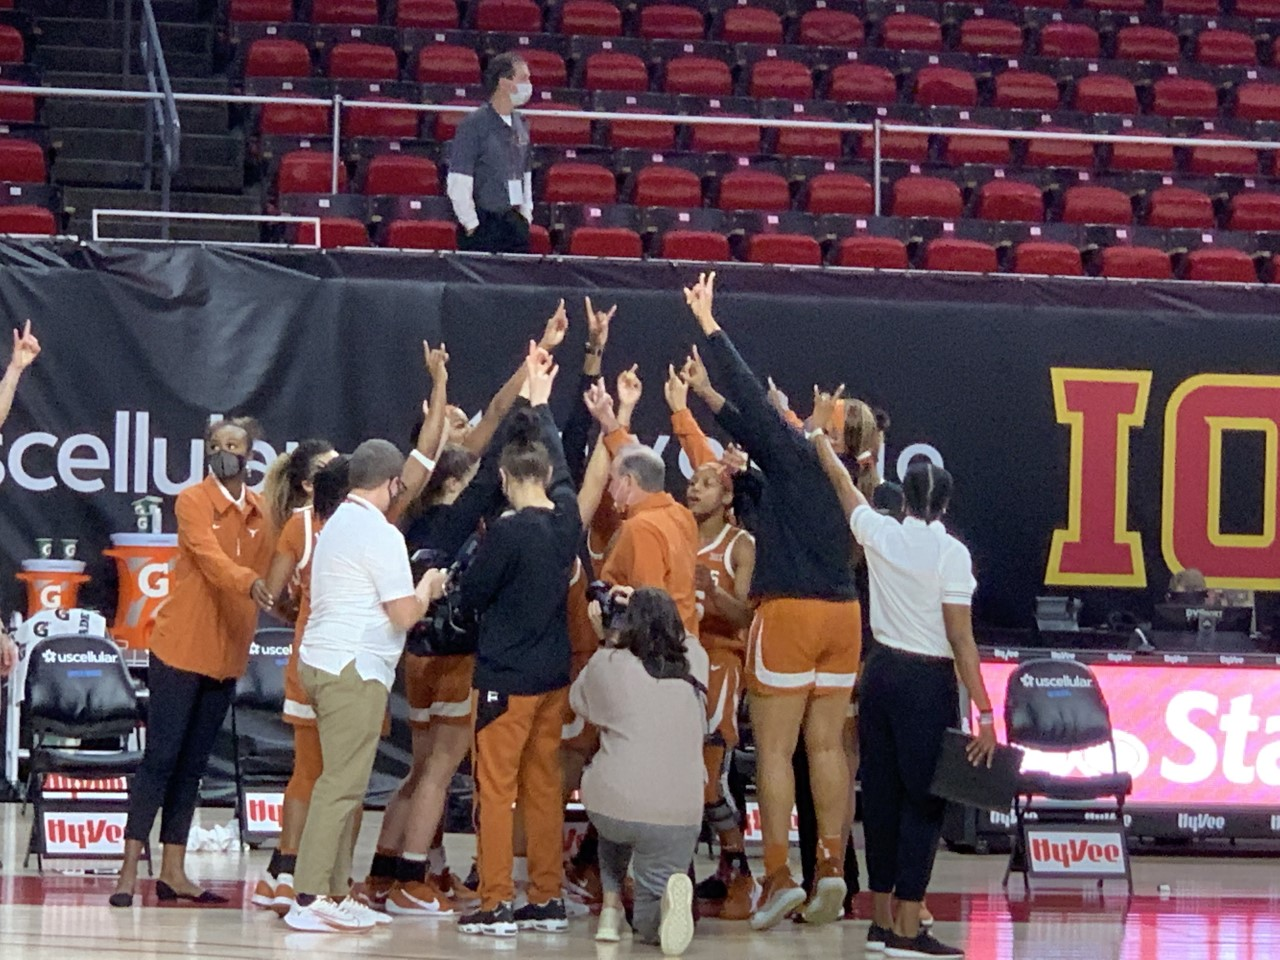 Texas women's basketball - Iowa State